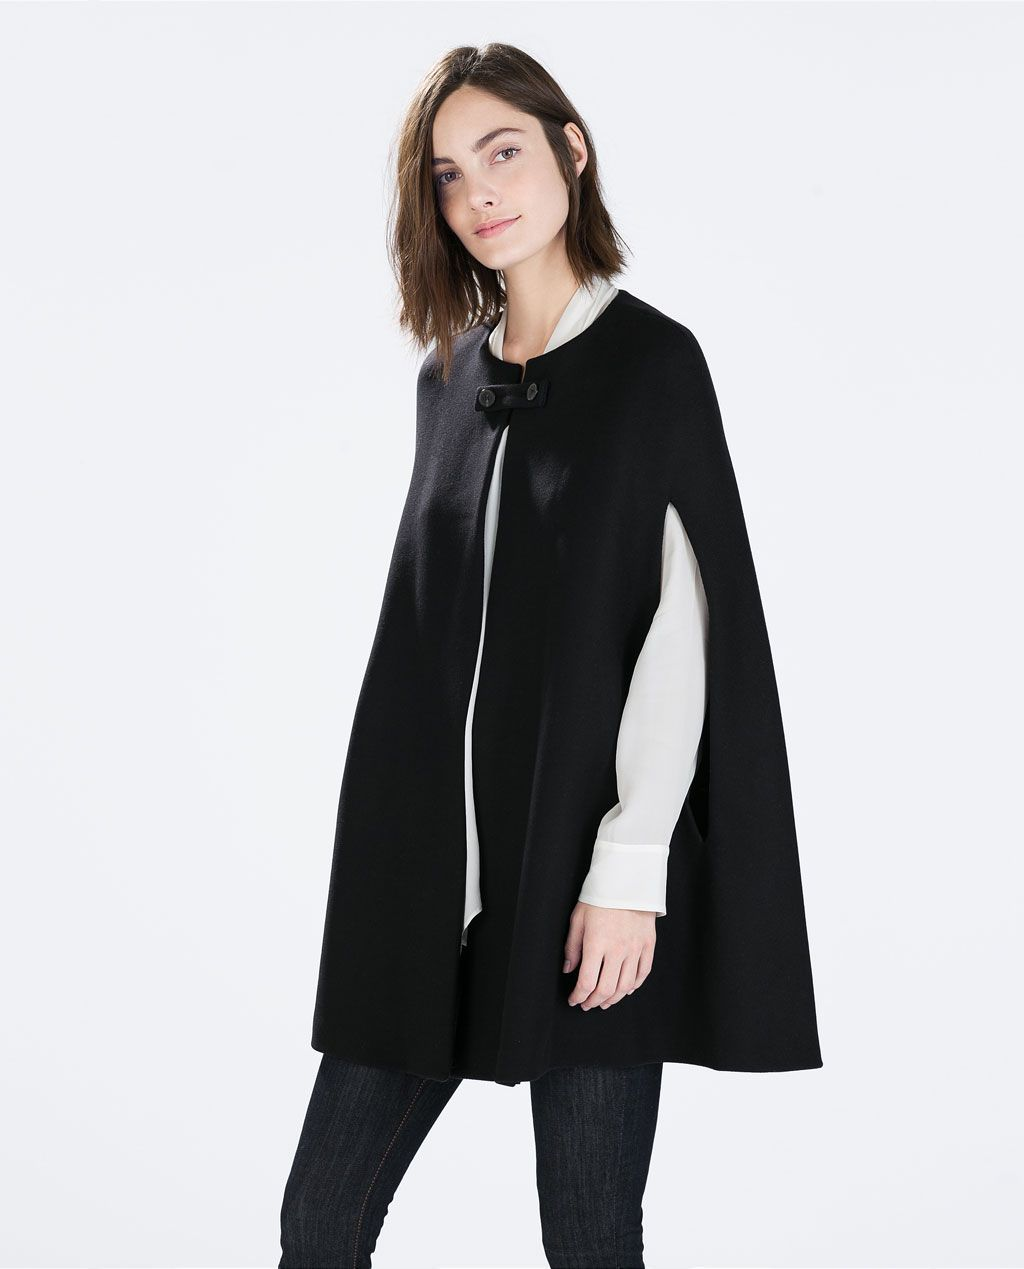 ZARA - NEW THIS WEEK - BUTTONED CAPE COAT | Gimaawikwe | Pinterest